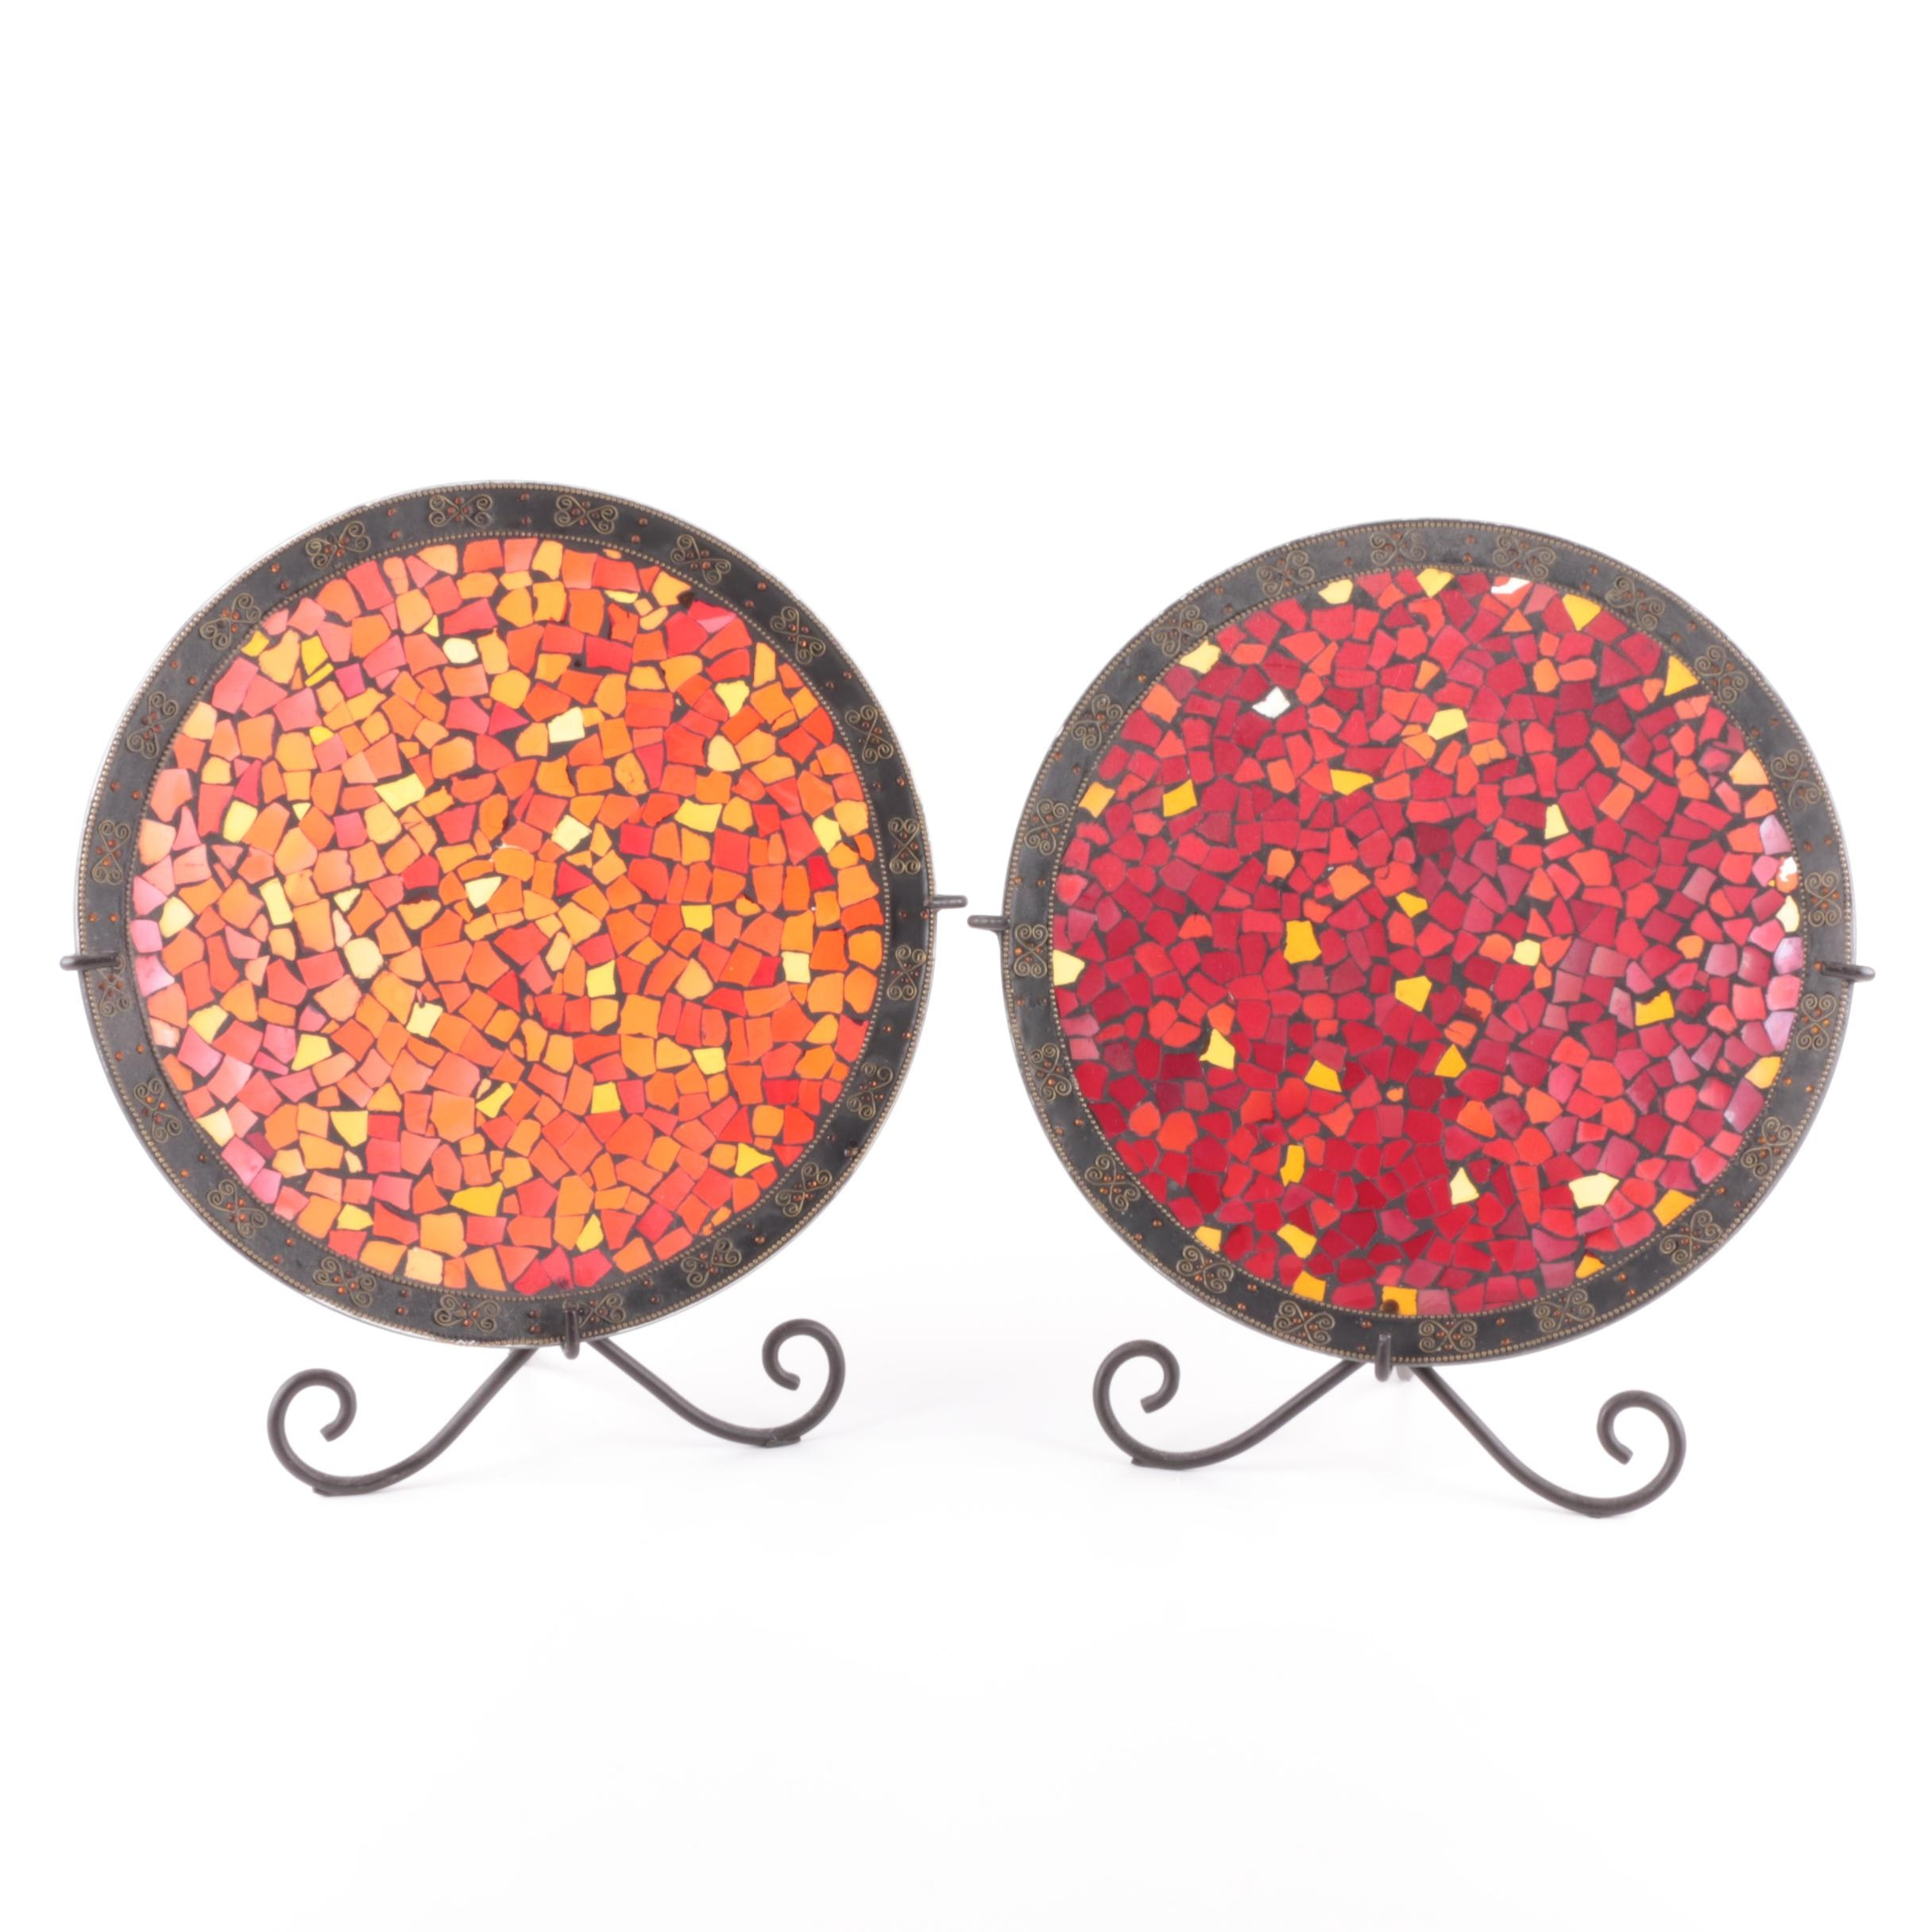 Glass Mosaic Decorative Plates with Metal Stands